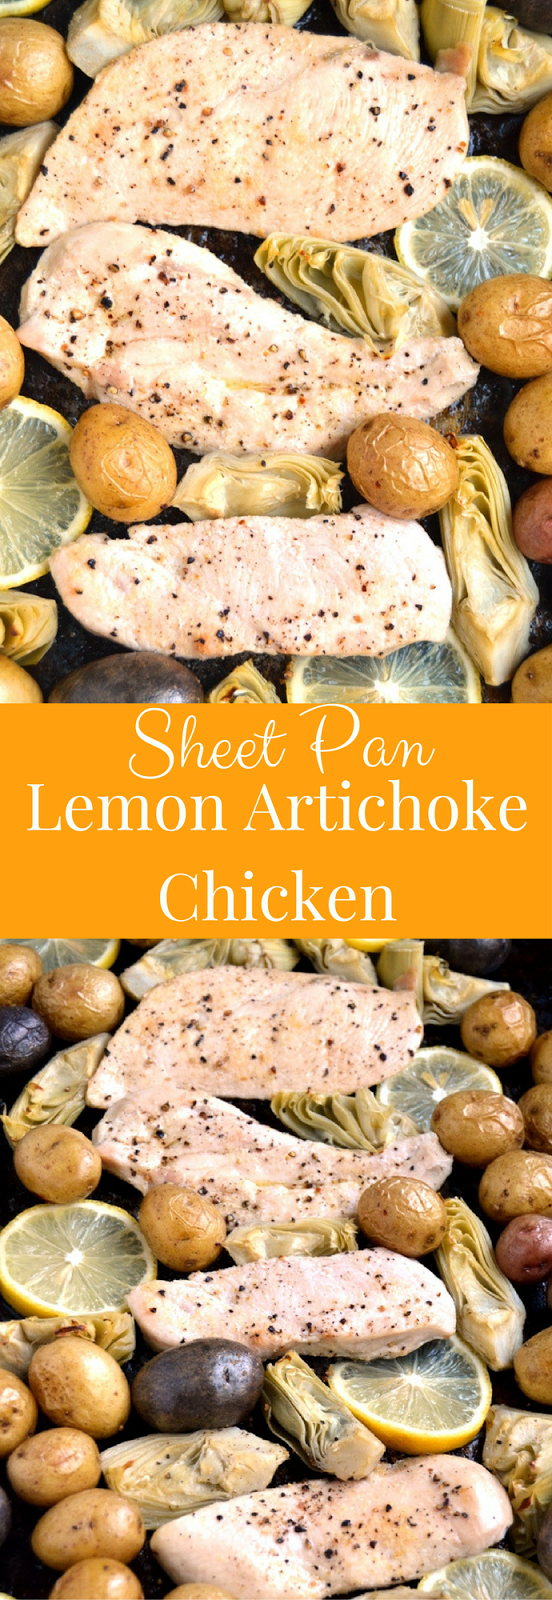 Sheet Pan Lemon Artichoke Chicken takes about 30 minutes to make, uses one pan and combines baked chicken breast with a fresh lemon sauce, roasted artichokes and baby potatoes! www.nutritionistreviews.com